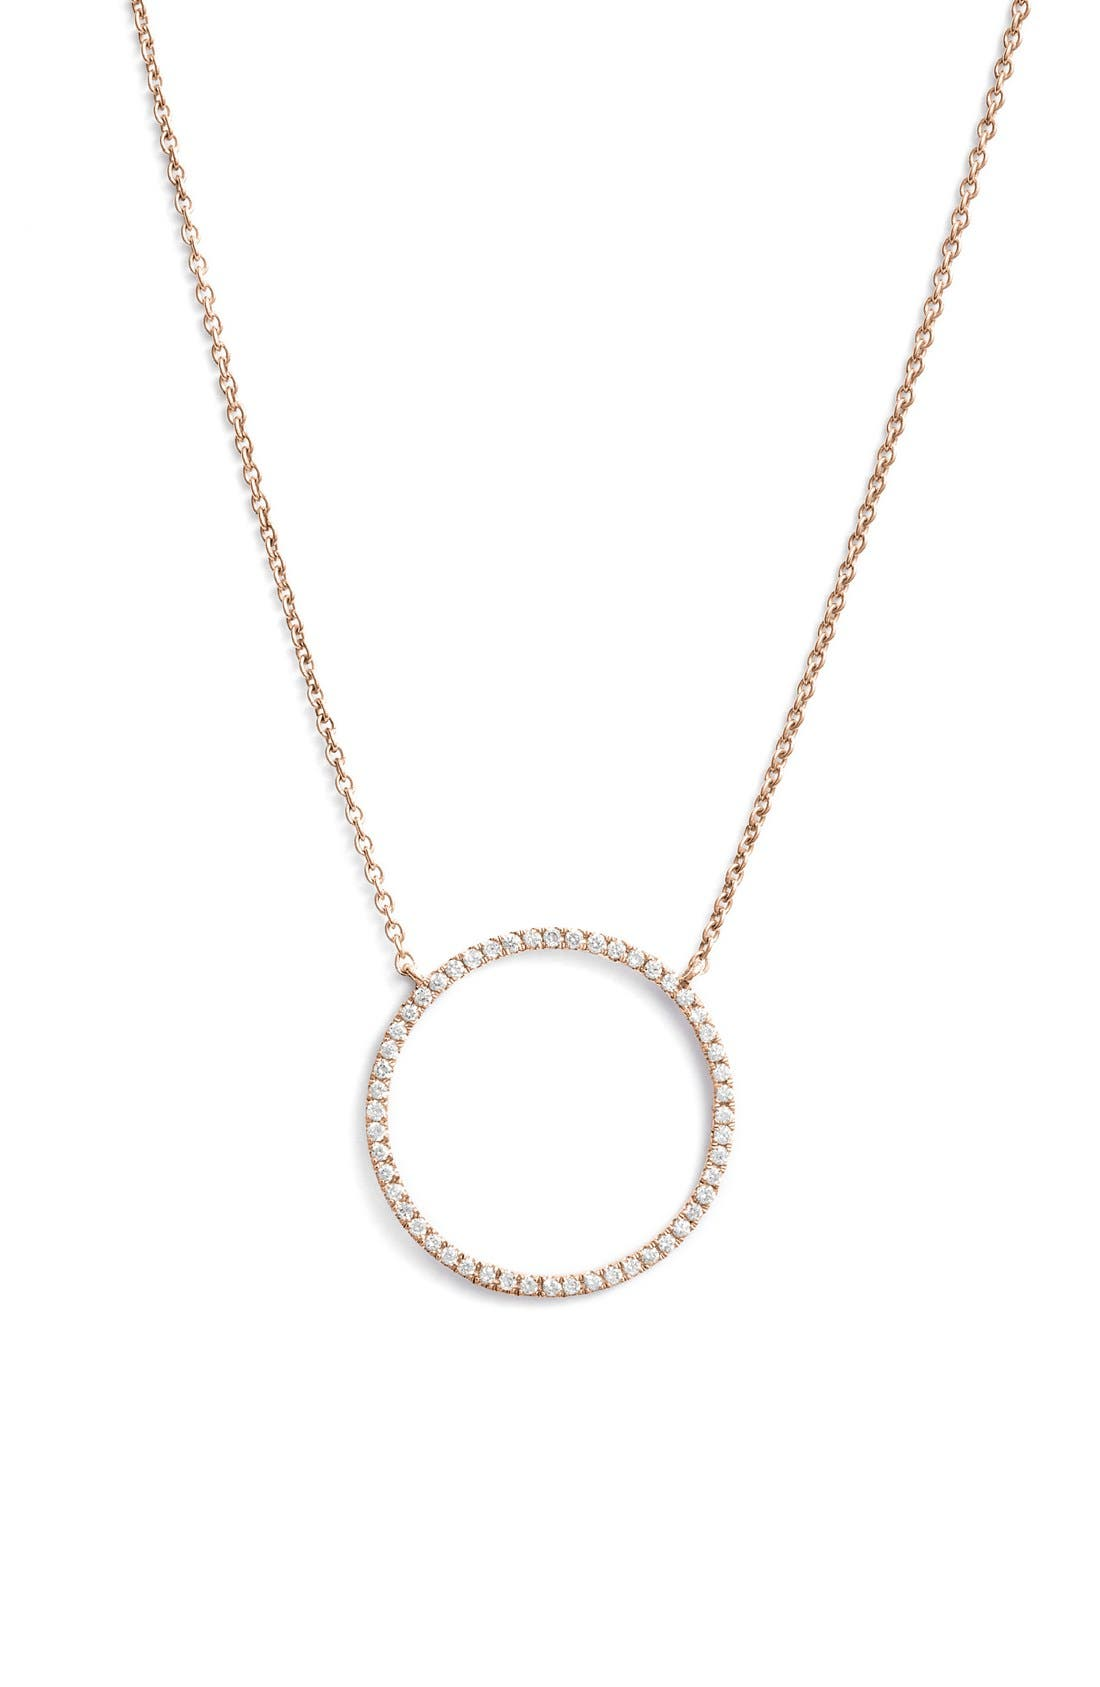 Main Image - Bony Levy 'Simple Obsessions' Circle Pendant Necklace (Nordstrom Exclusive)